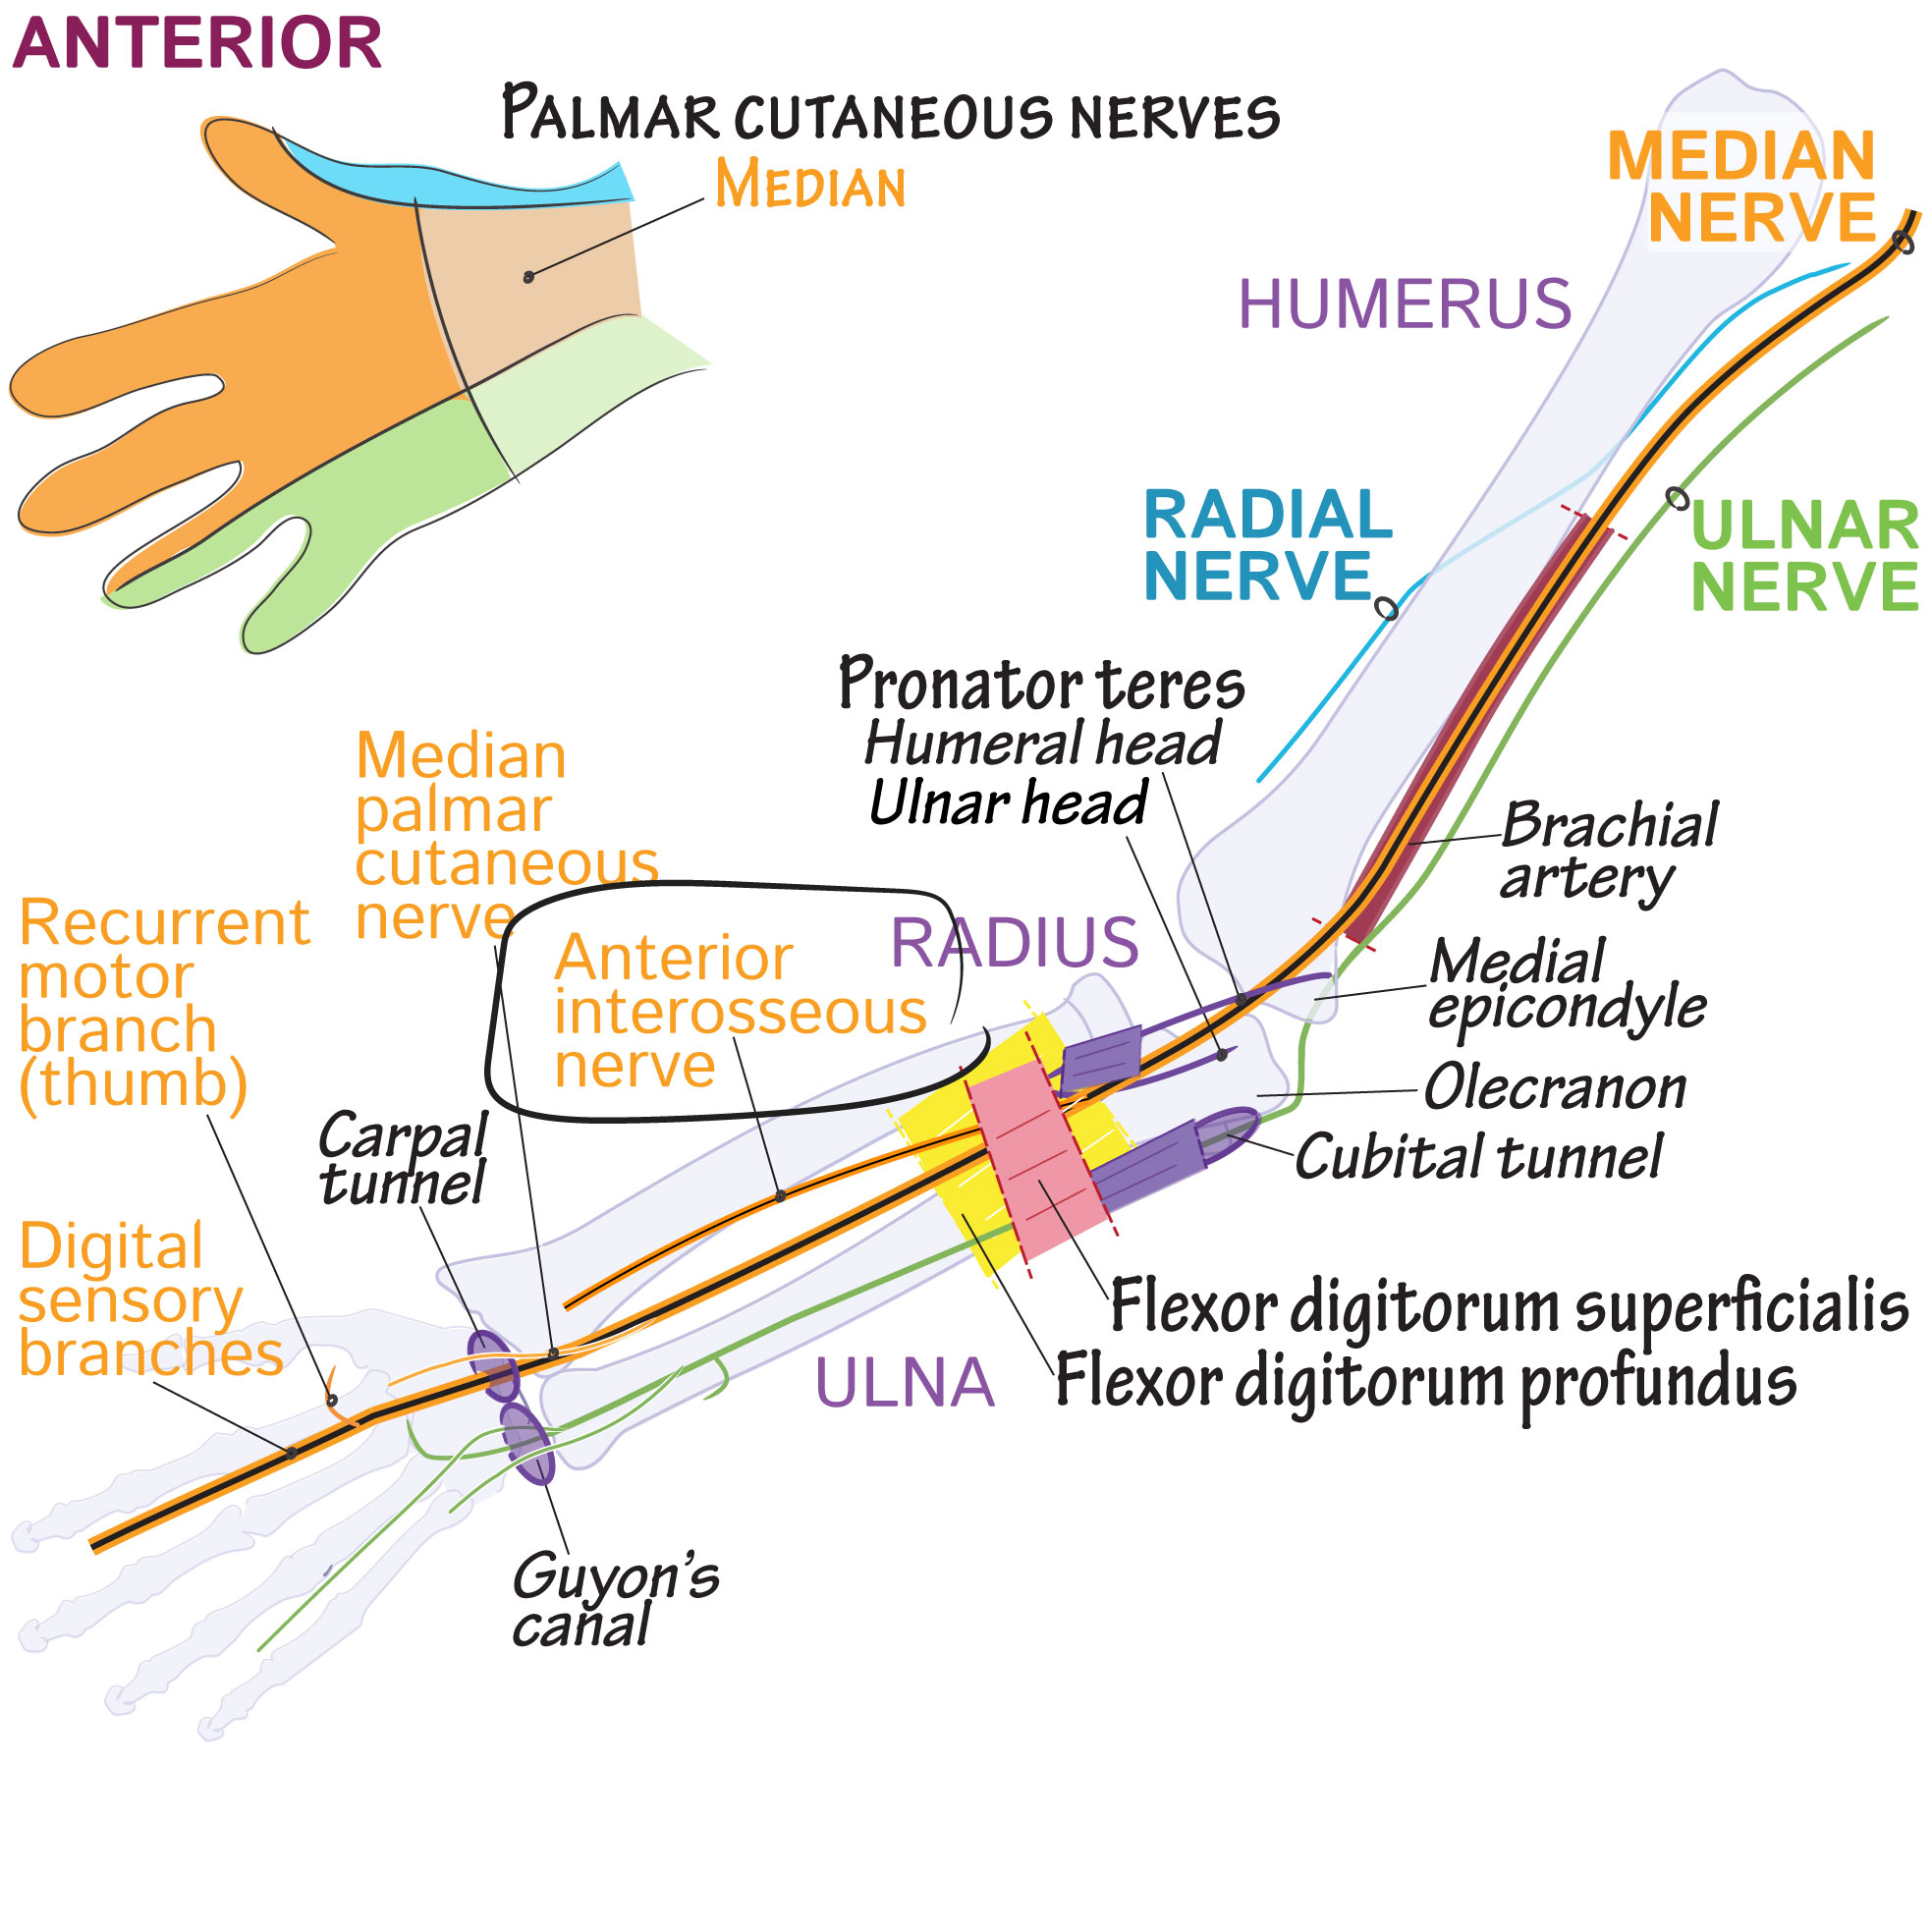 Anterior Interosseous Nerve Draw It To Know It